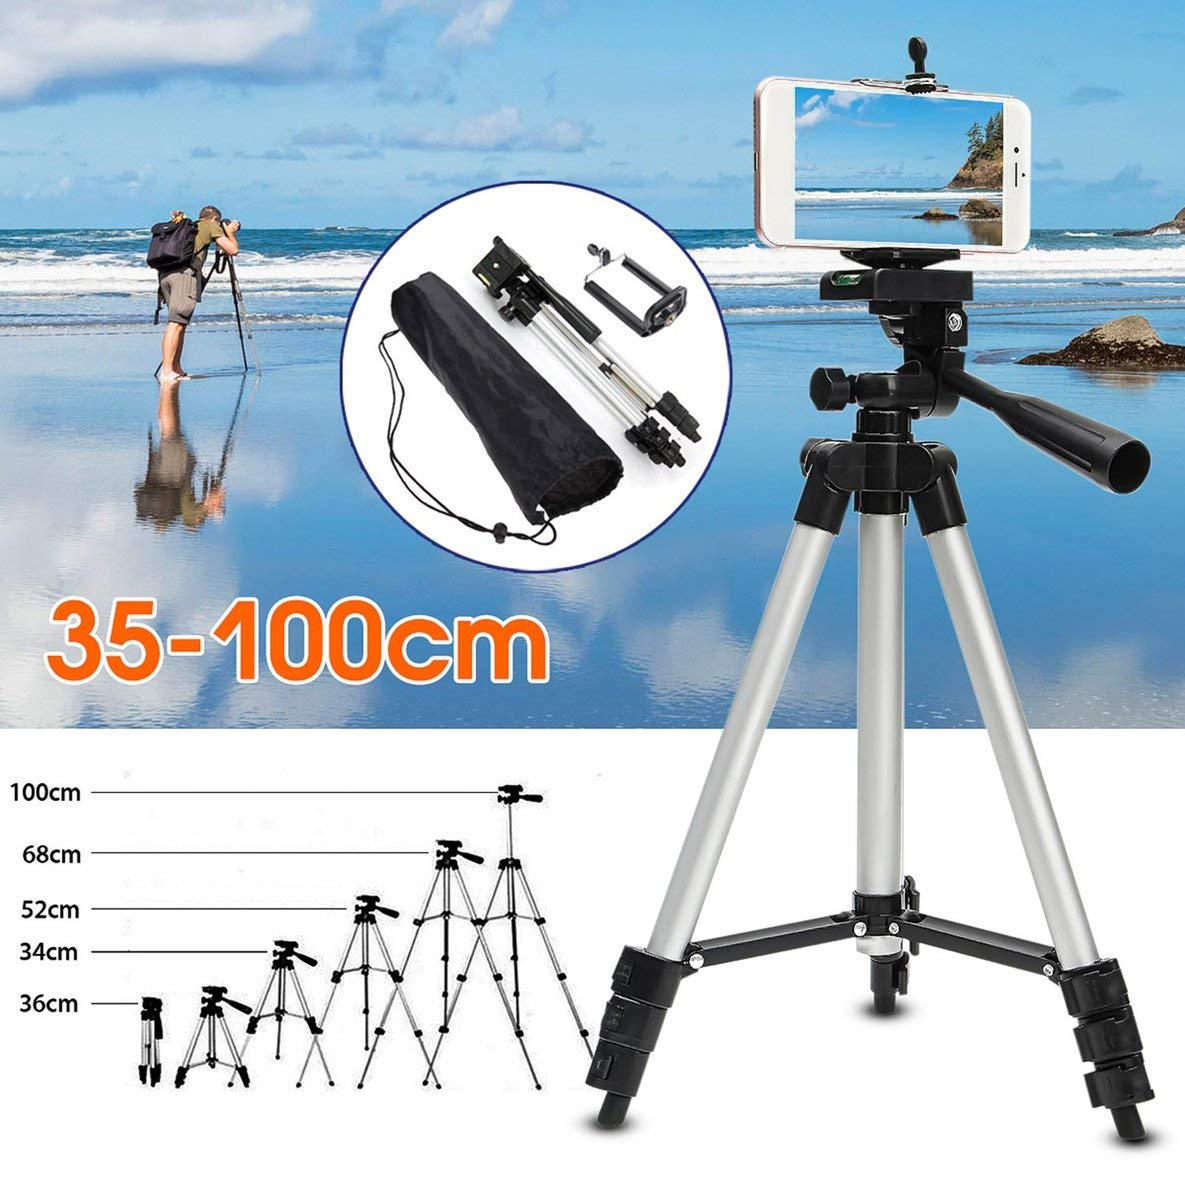 Noradtjcca Portable Flexible Telescopic Camera Tripod With Stand Holder Mount With Carry Bag For Mobile Phone Smart Phone Camcorder